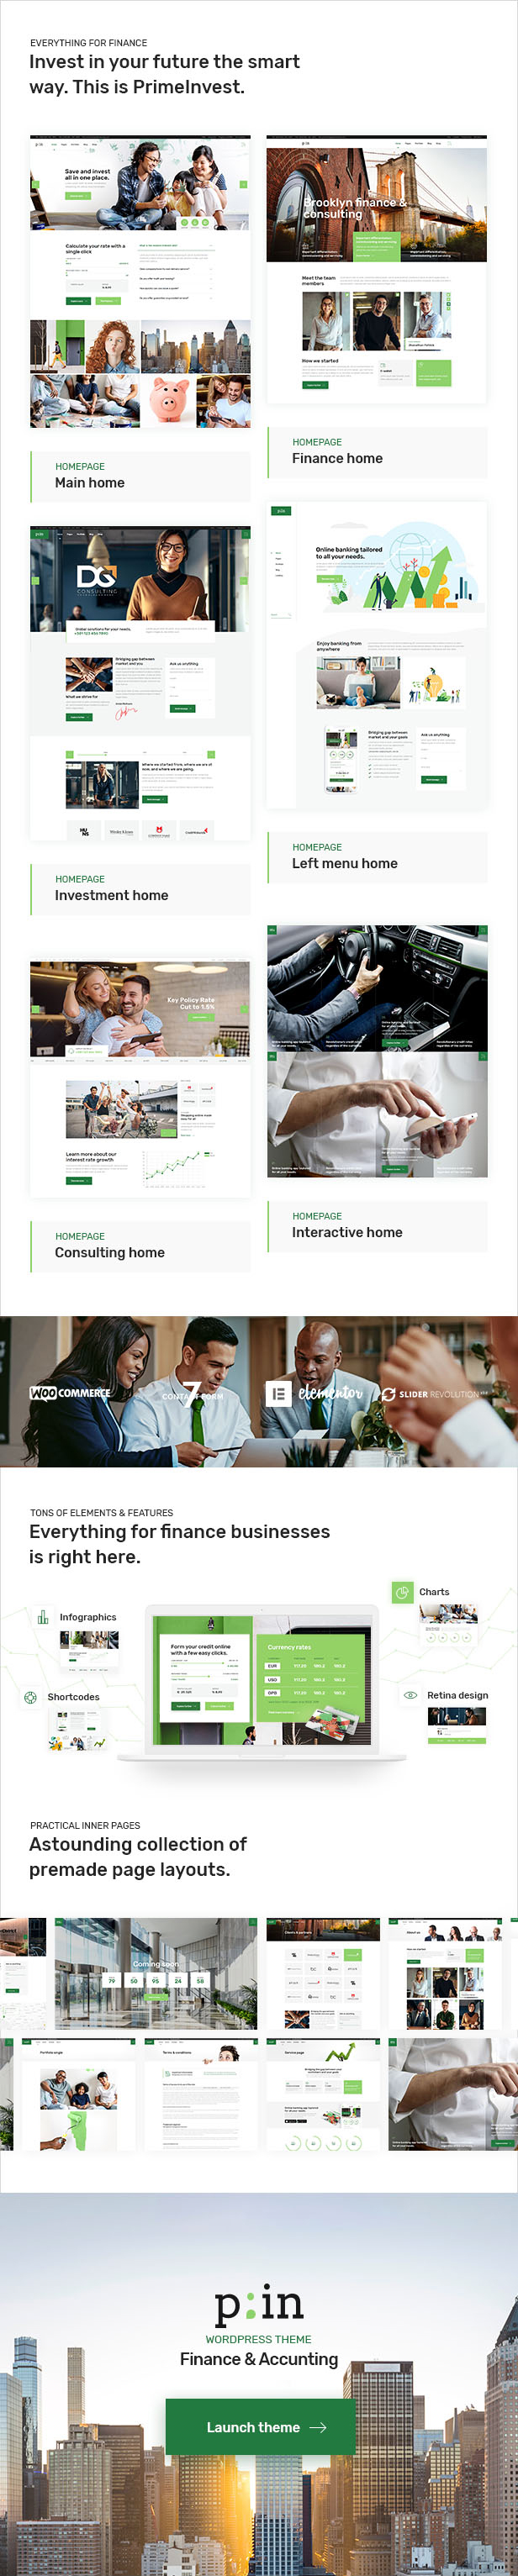 PrimeInvest - Finance Theme - 2